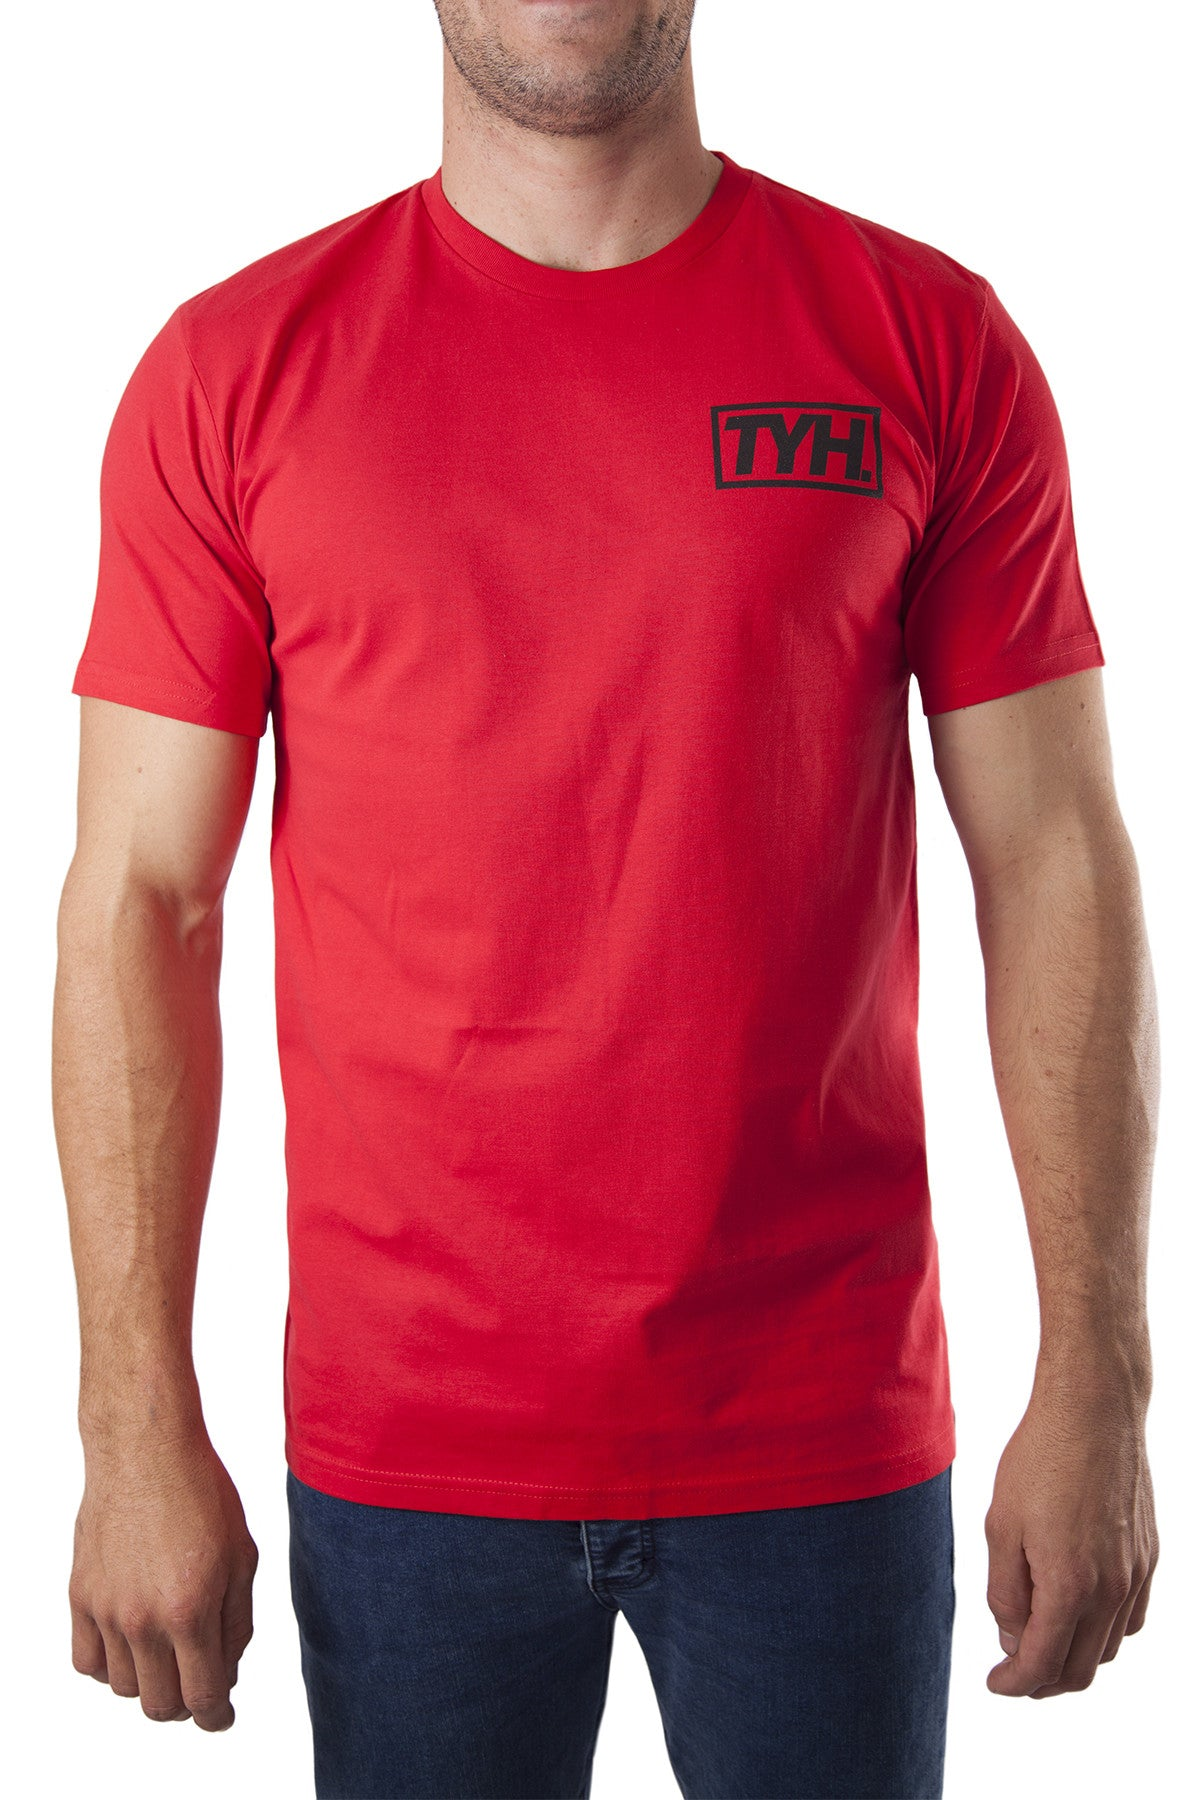 TYH. POCKET LOGO RED TSHIRT TEE